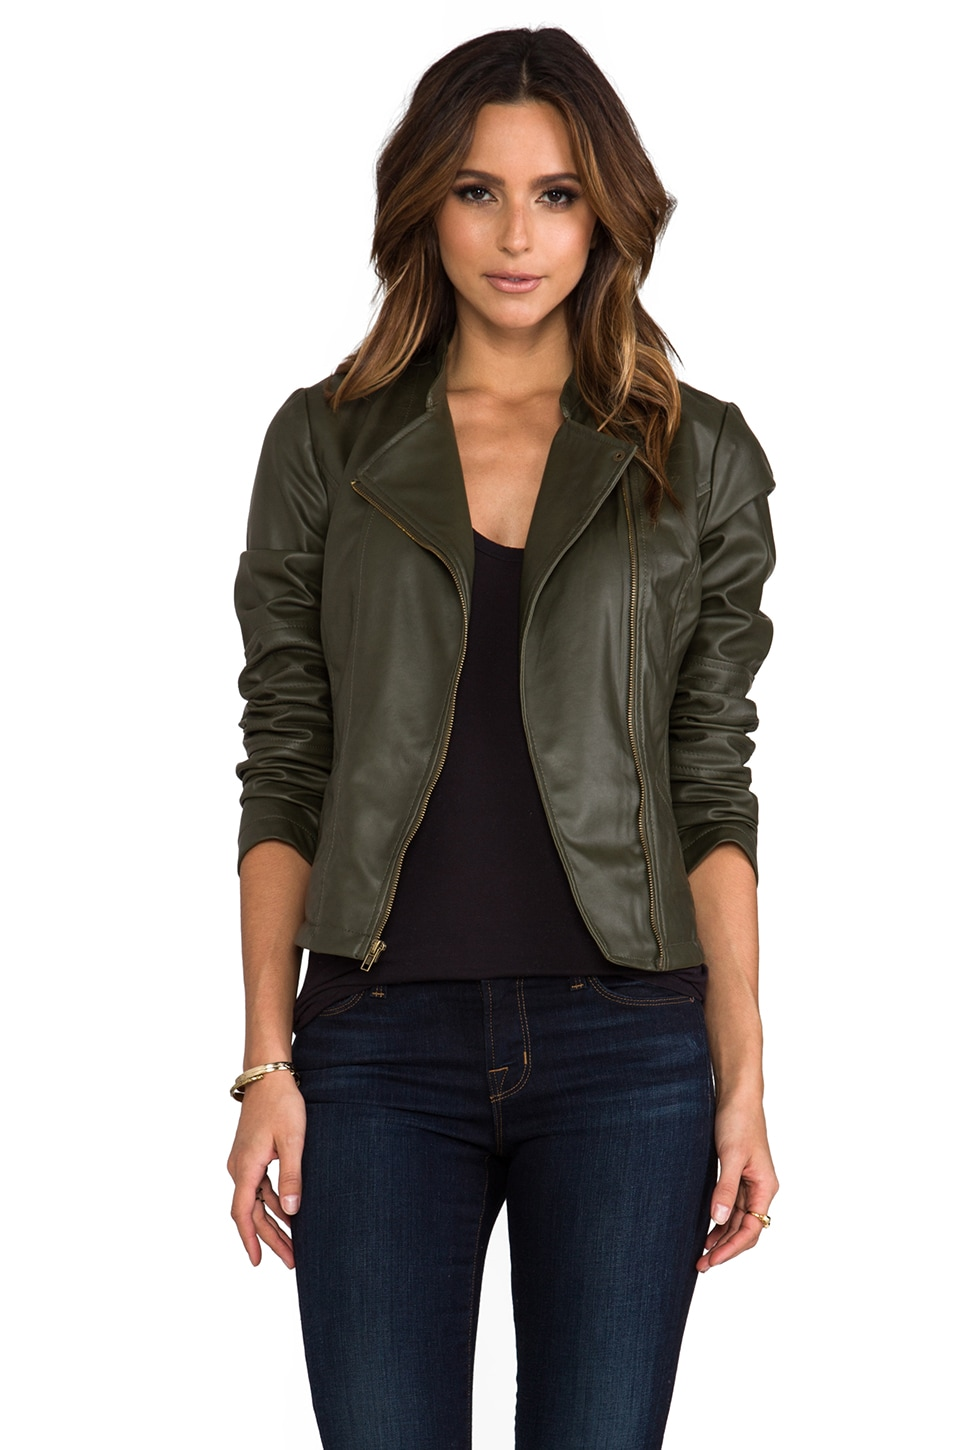 BB Dakota Harlet 2 Tone Washed Faux Leather Jacket in Army Green